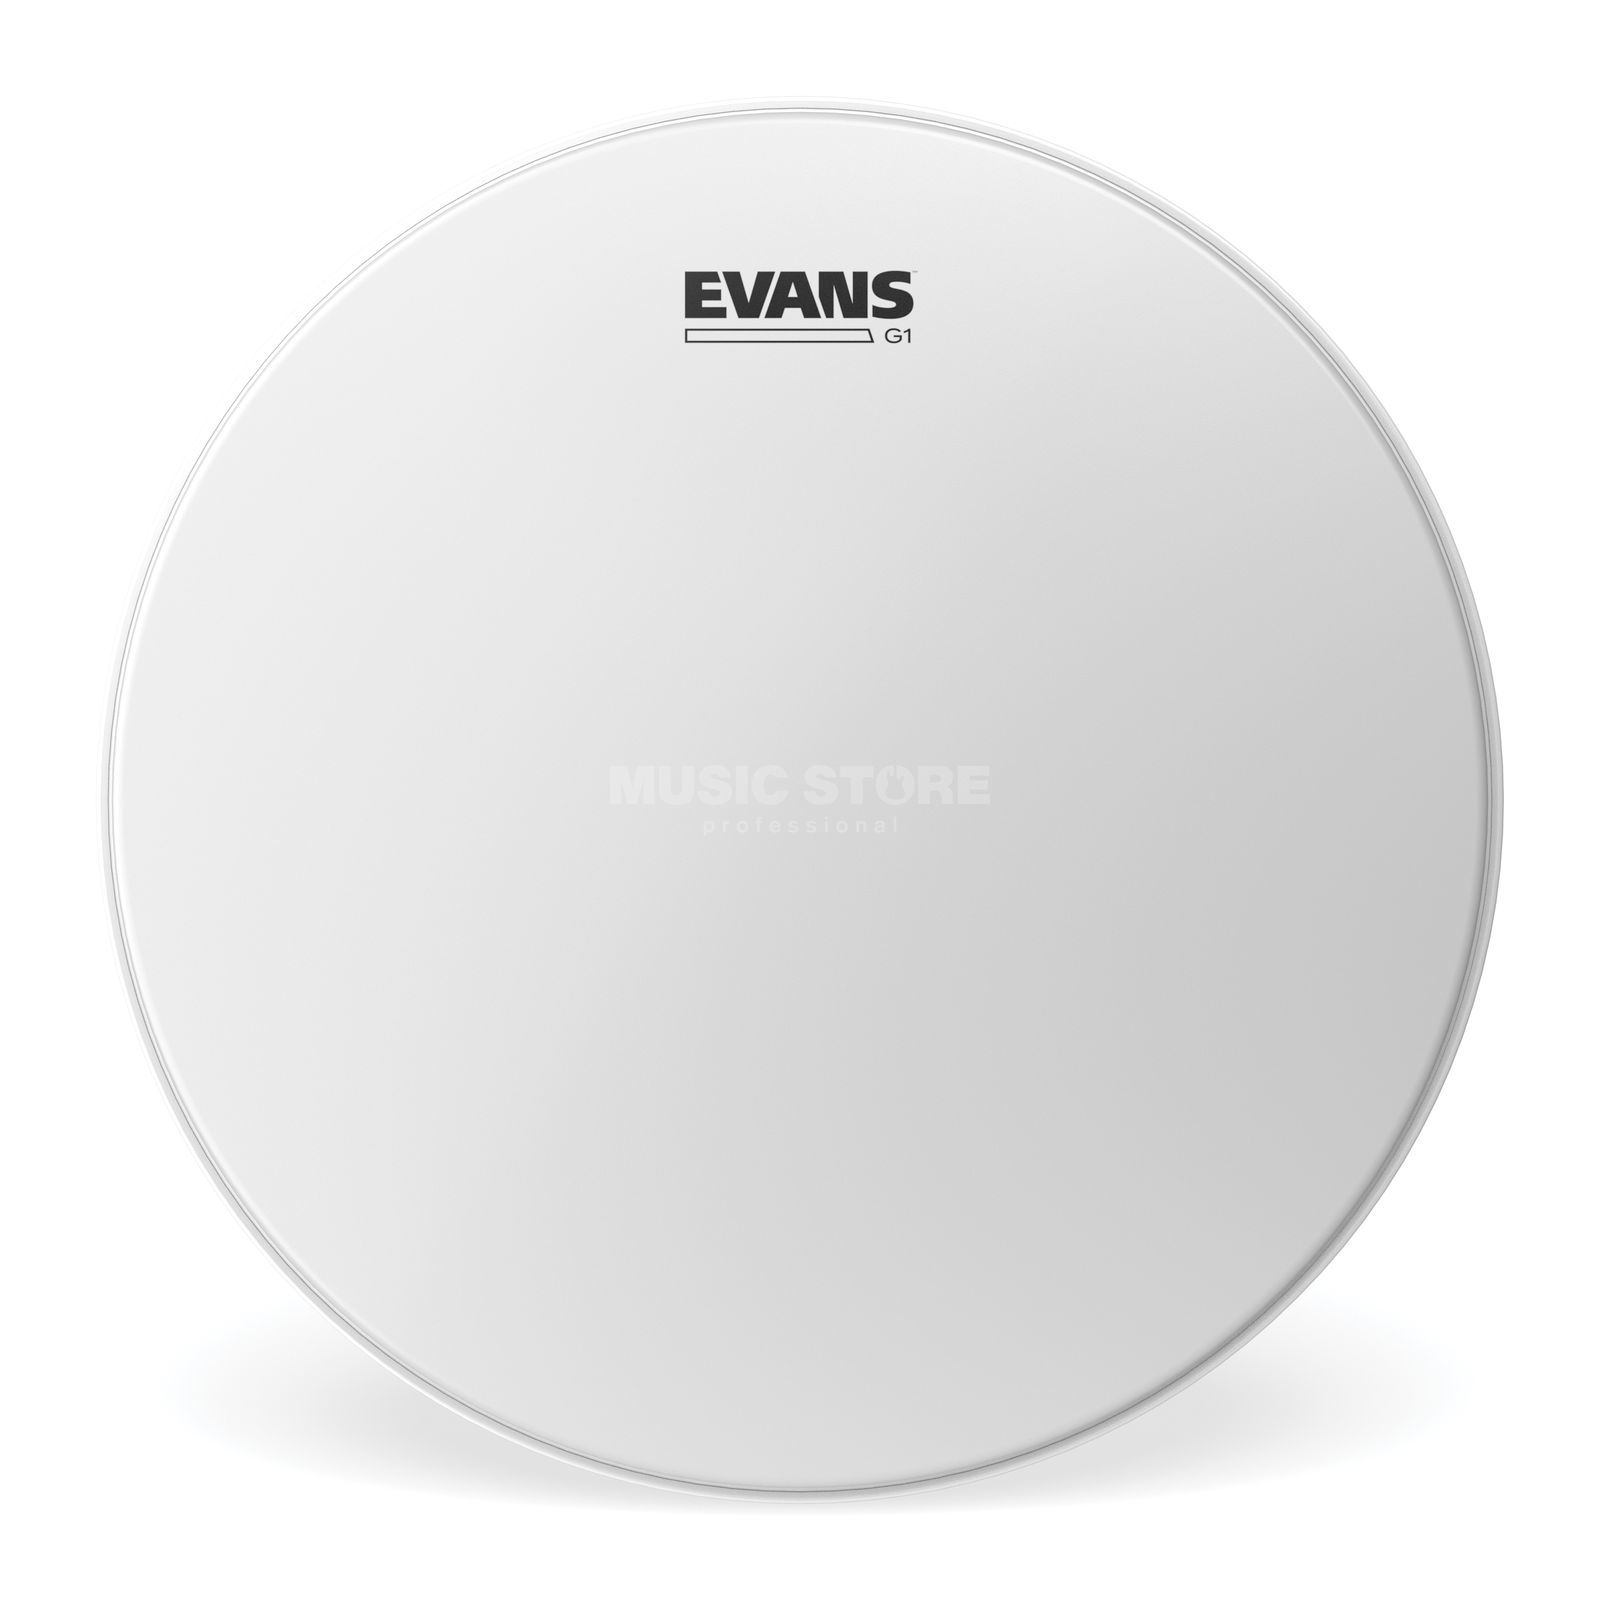 "Evans G1 Coated 15"", B15G1, Tom Batter Produktbild"